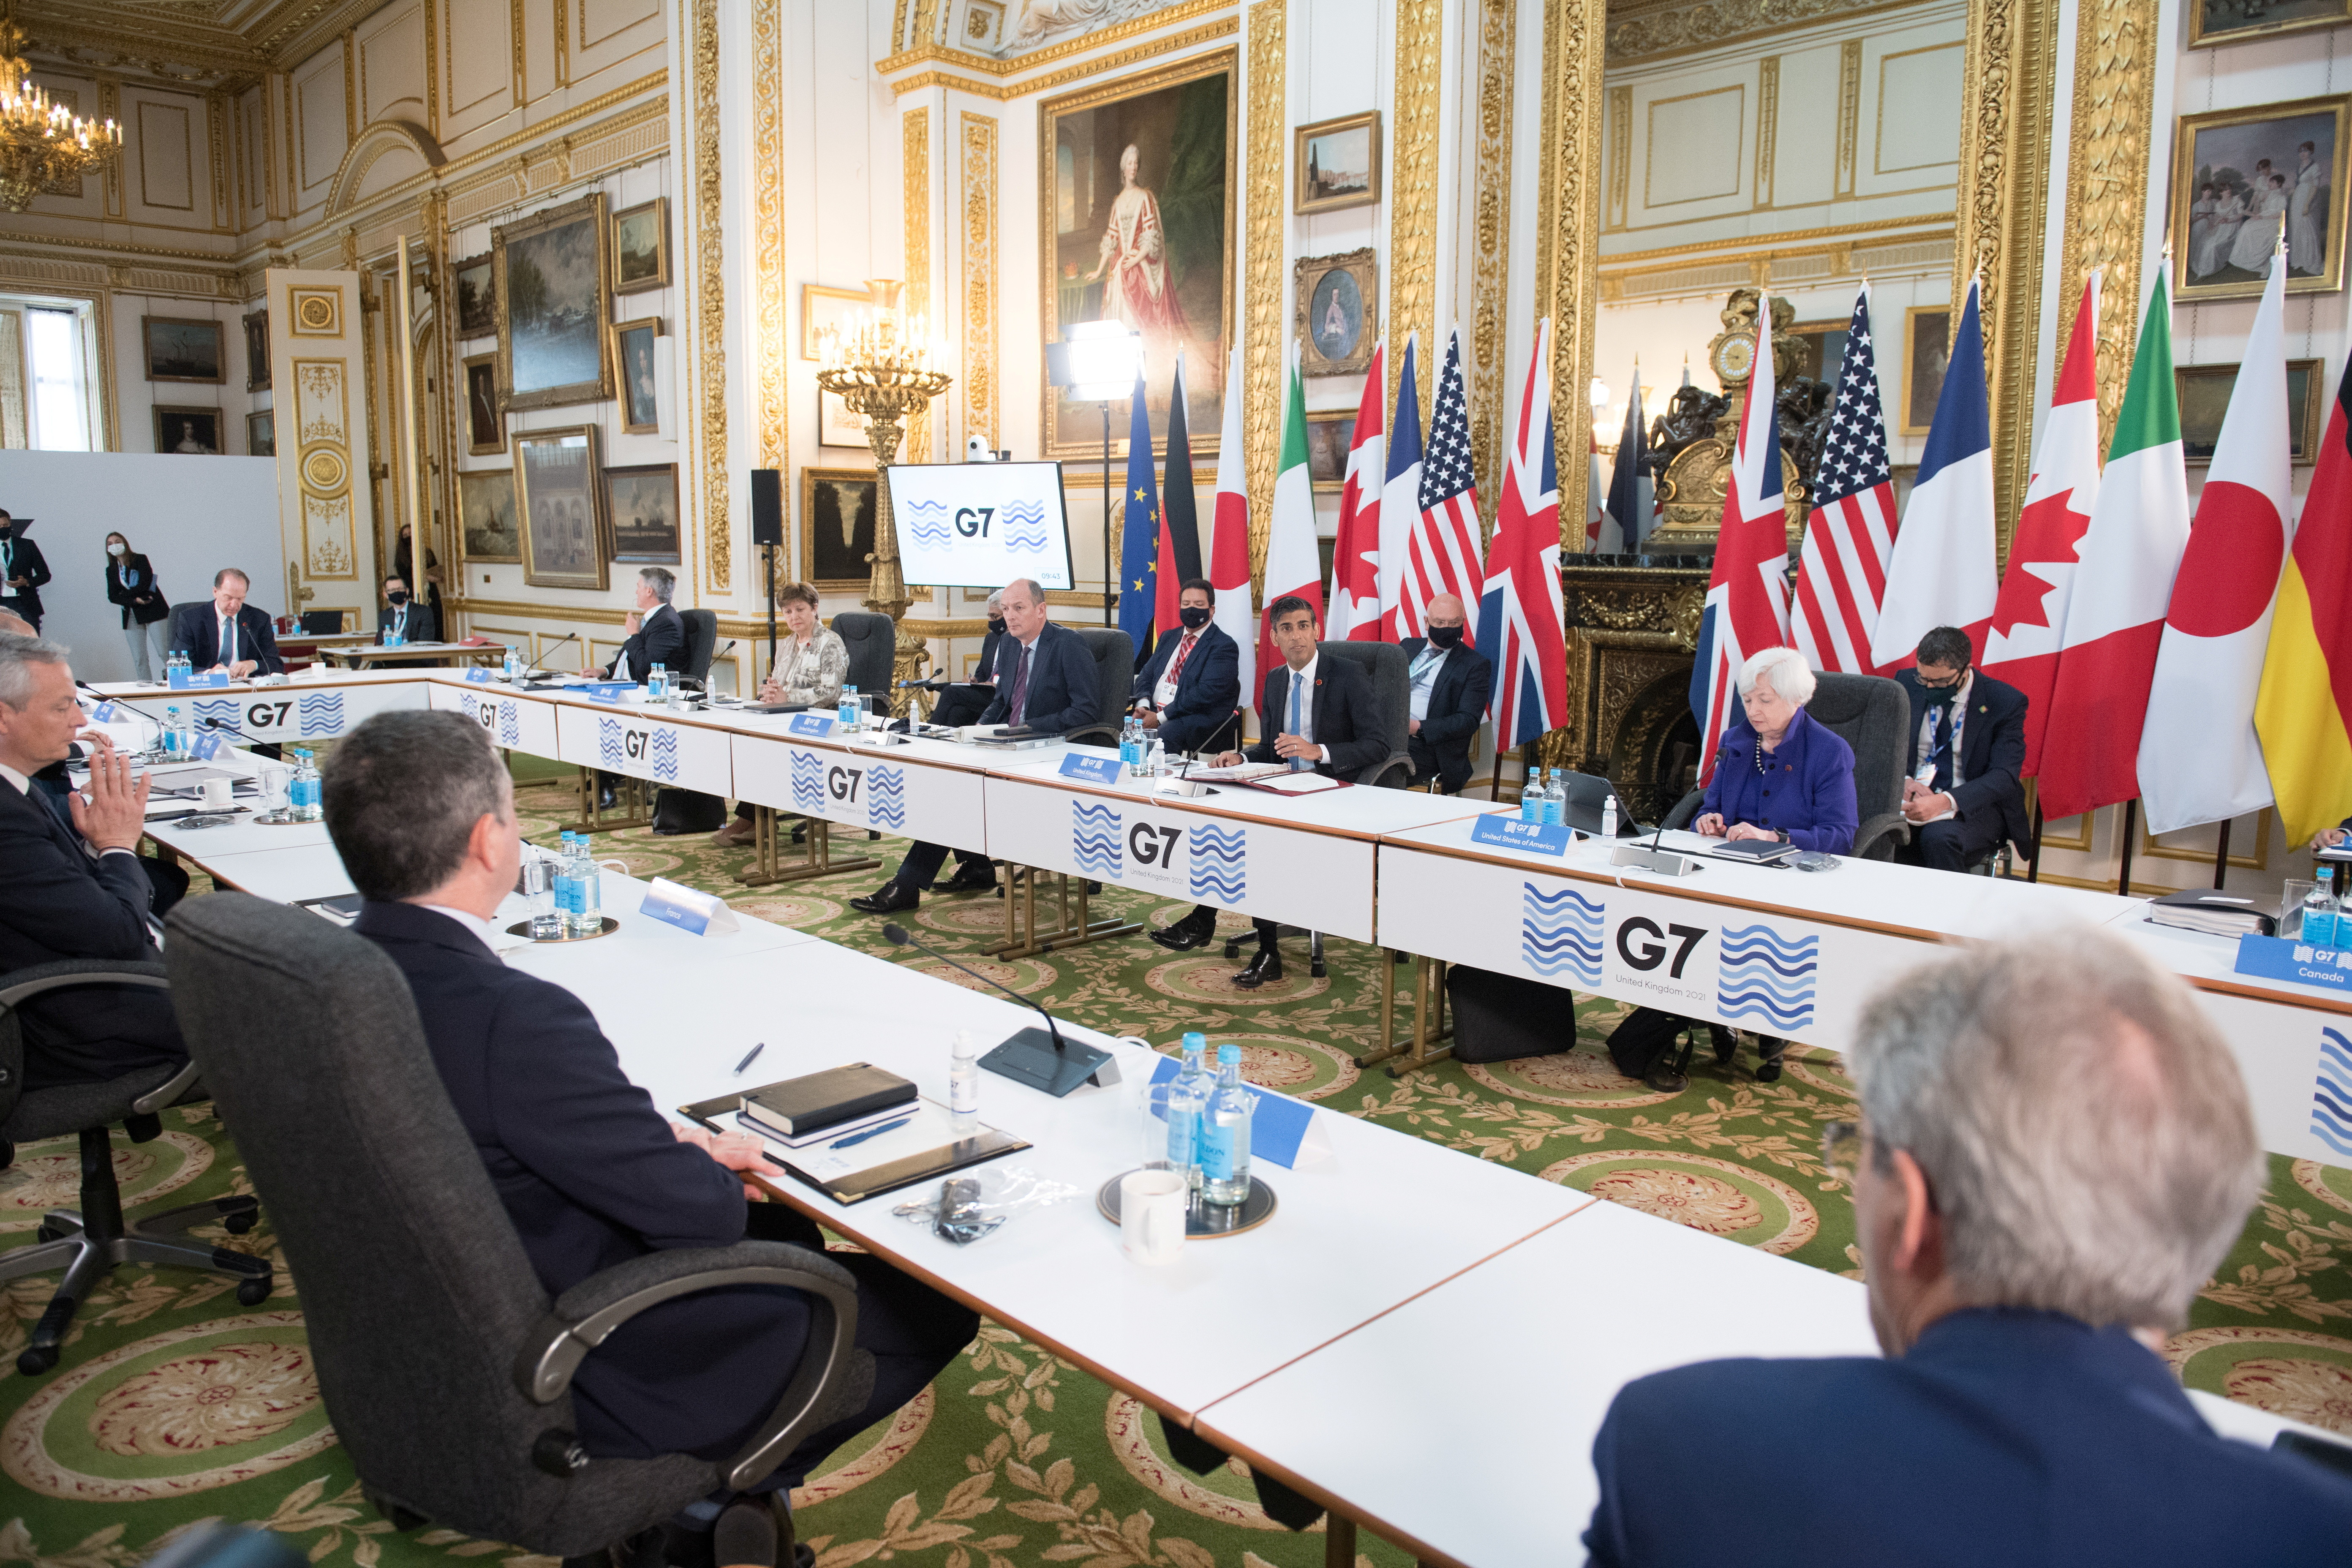 a meeting of finance ministers from across the G7 nations